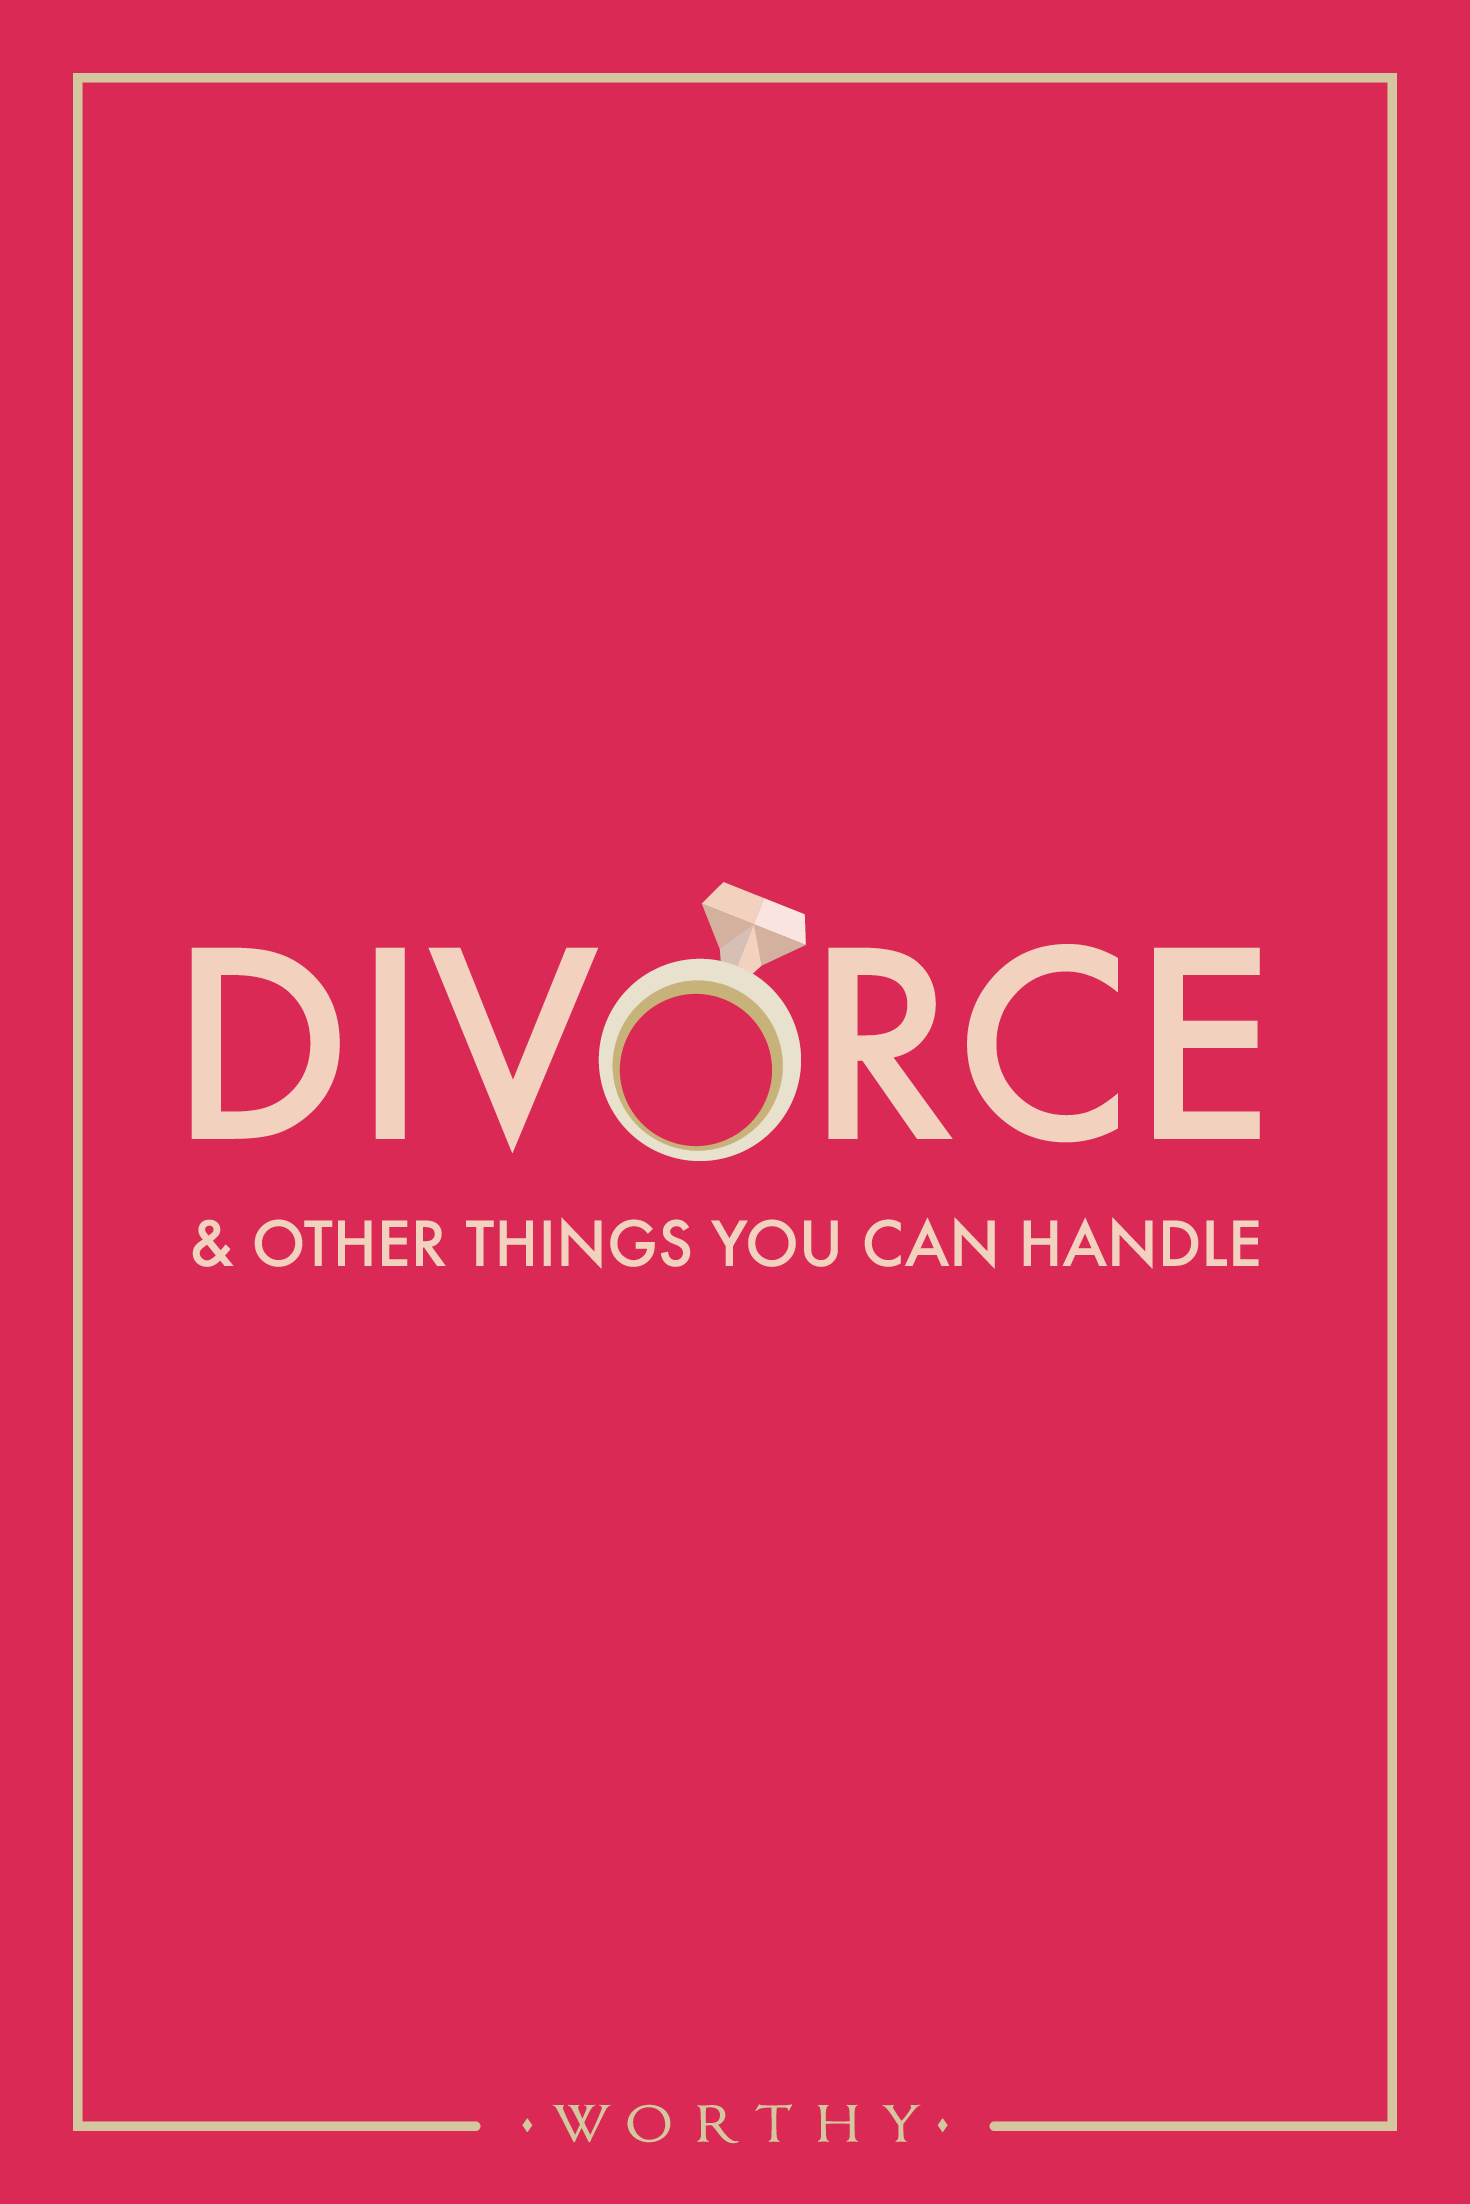 Listen to Karen Bigman discuss the other big D- dating after divorce. She's full of advice on how to date as a post-divorce woman in the modern world.